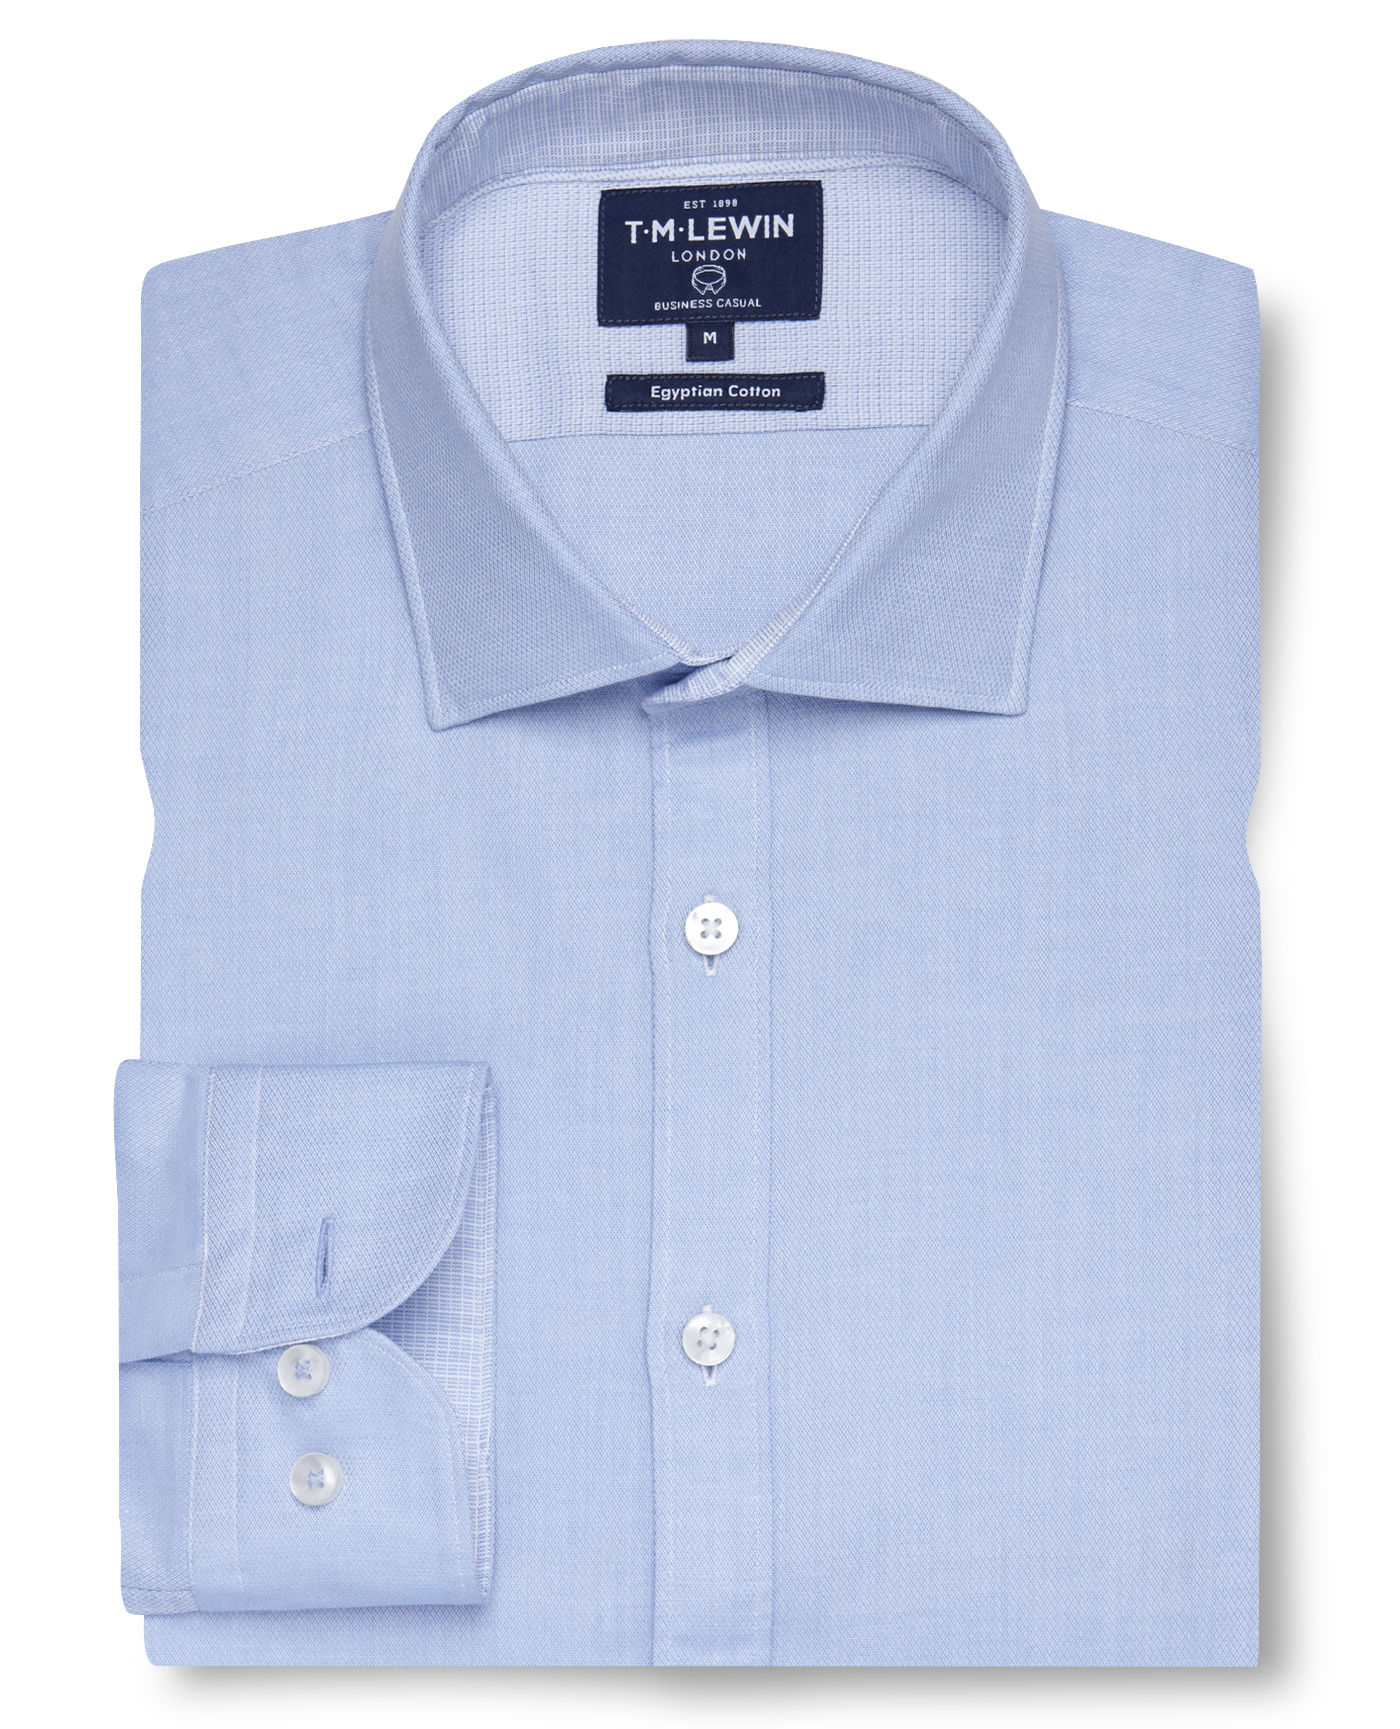 T.M.Lewin Casual Slim Fit Blue Egyptian Cotton Soft Collar Shirt